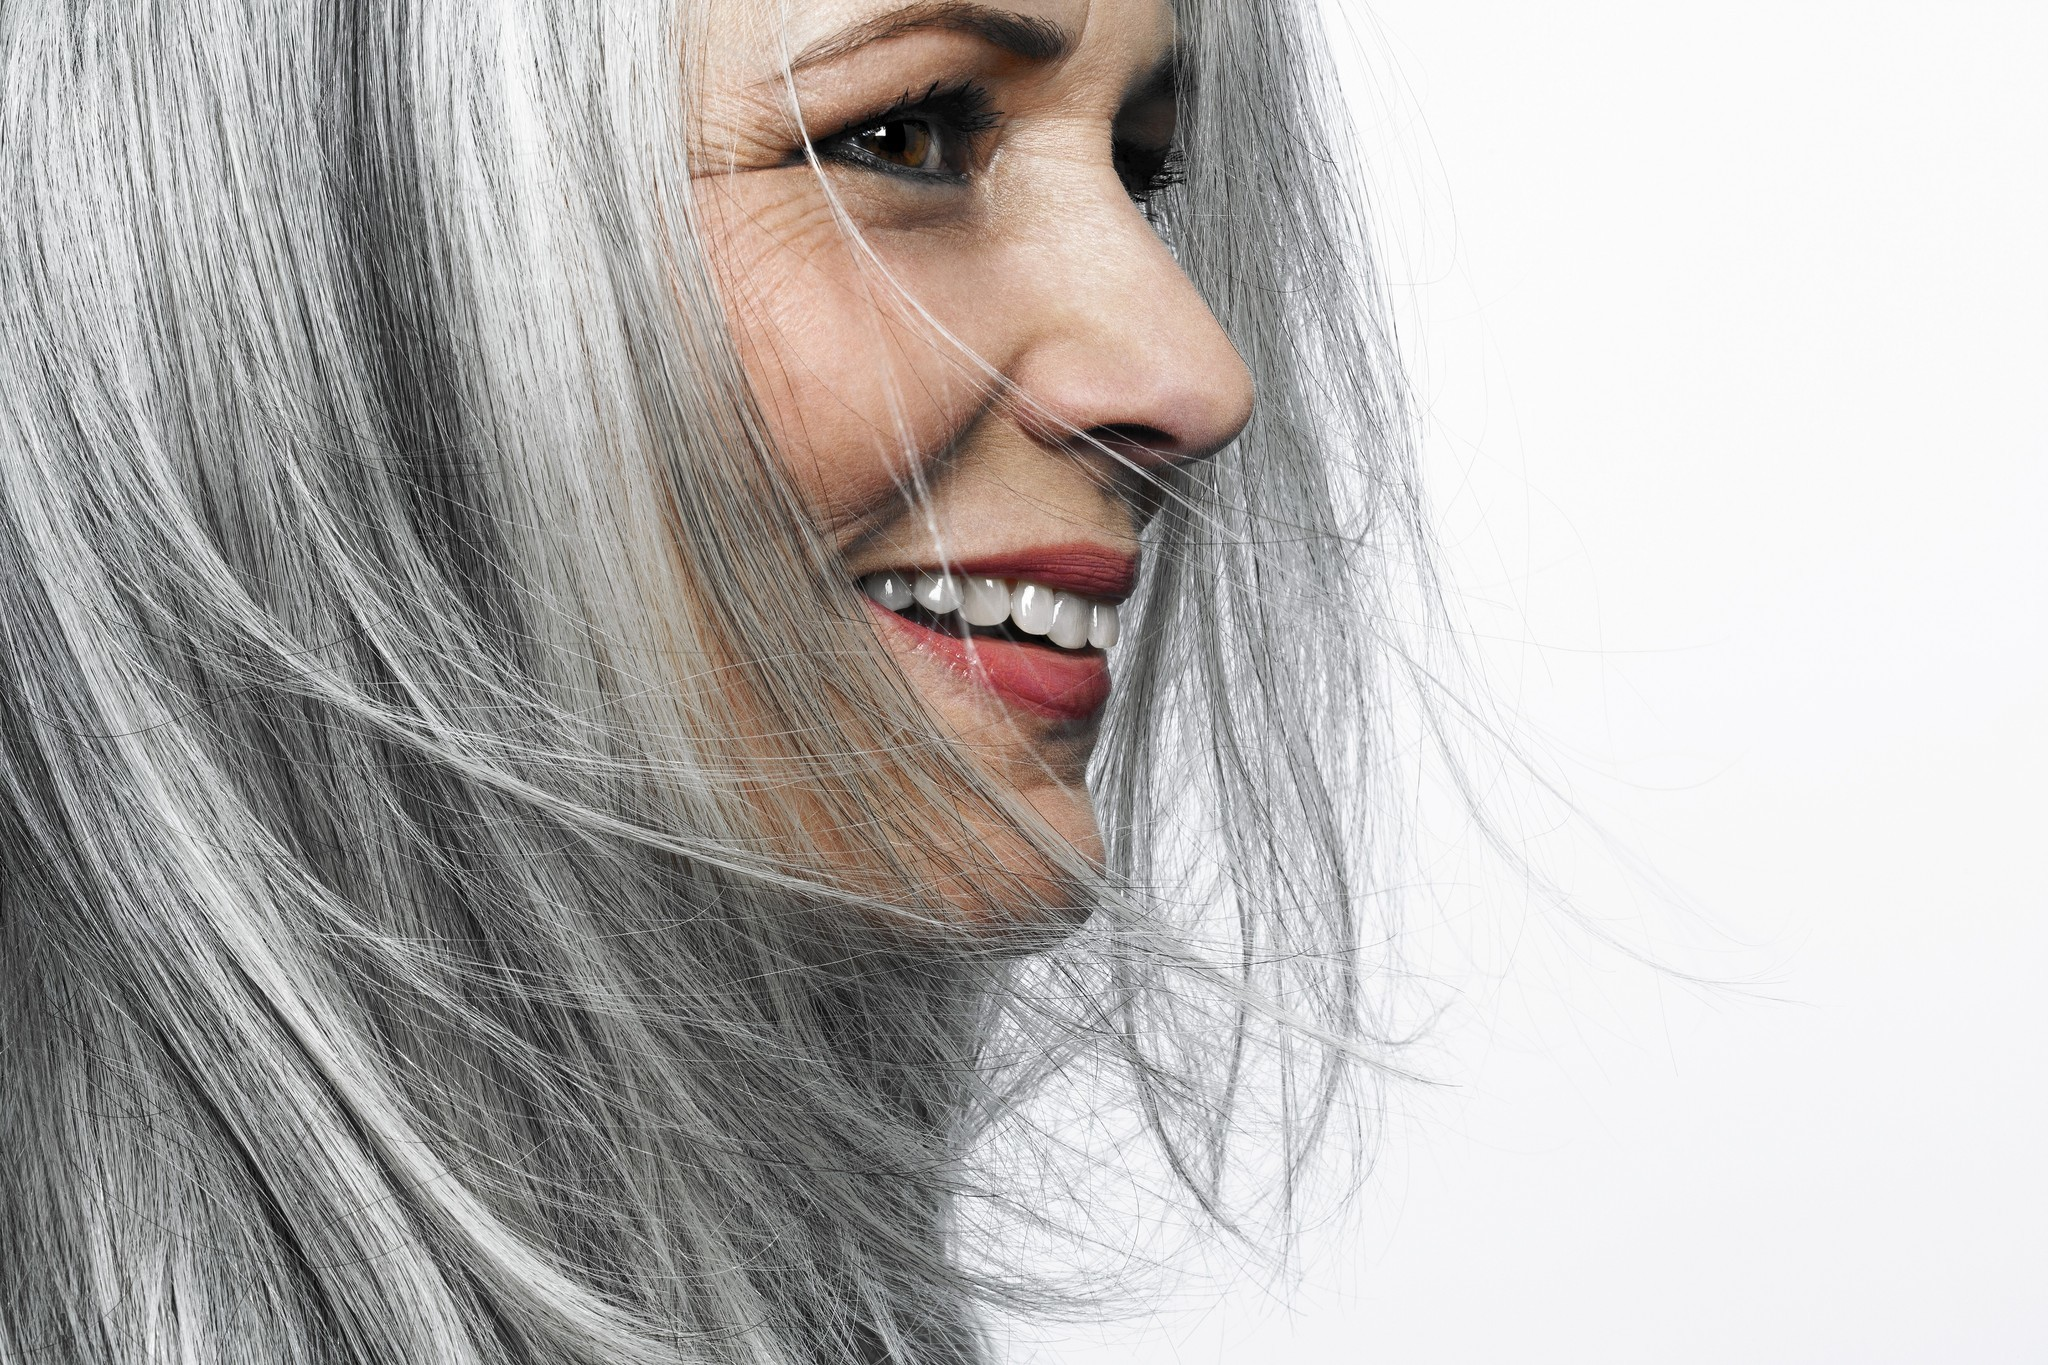 Ditching dye: How to go gray, gracefully